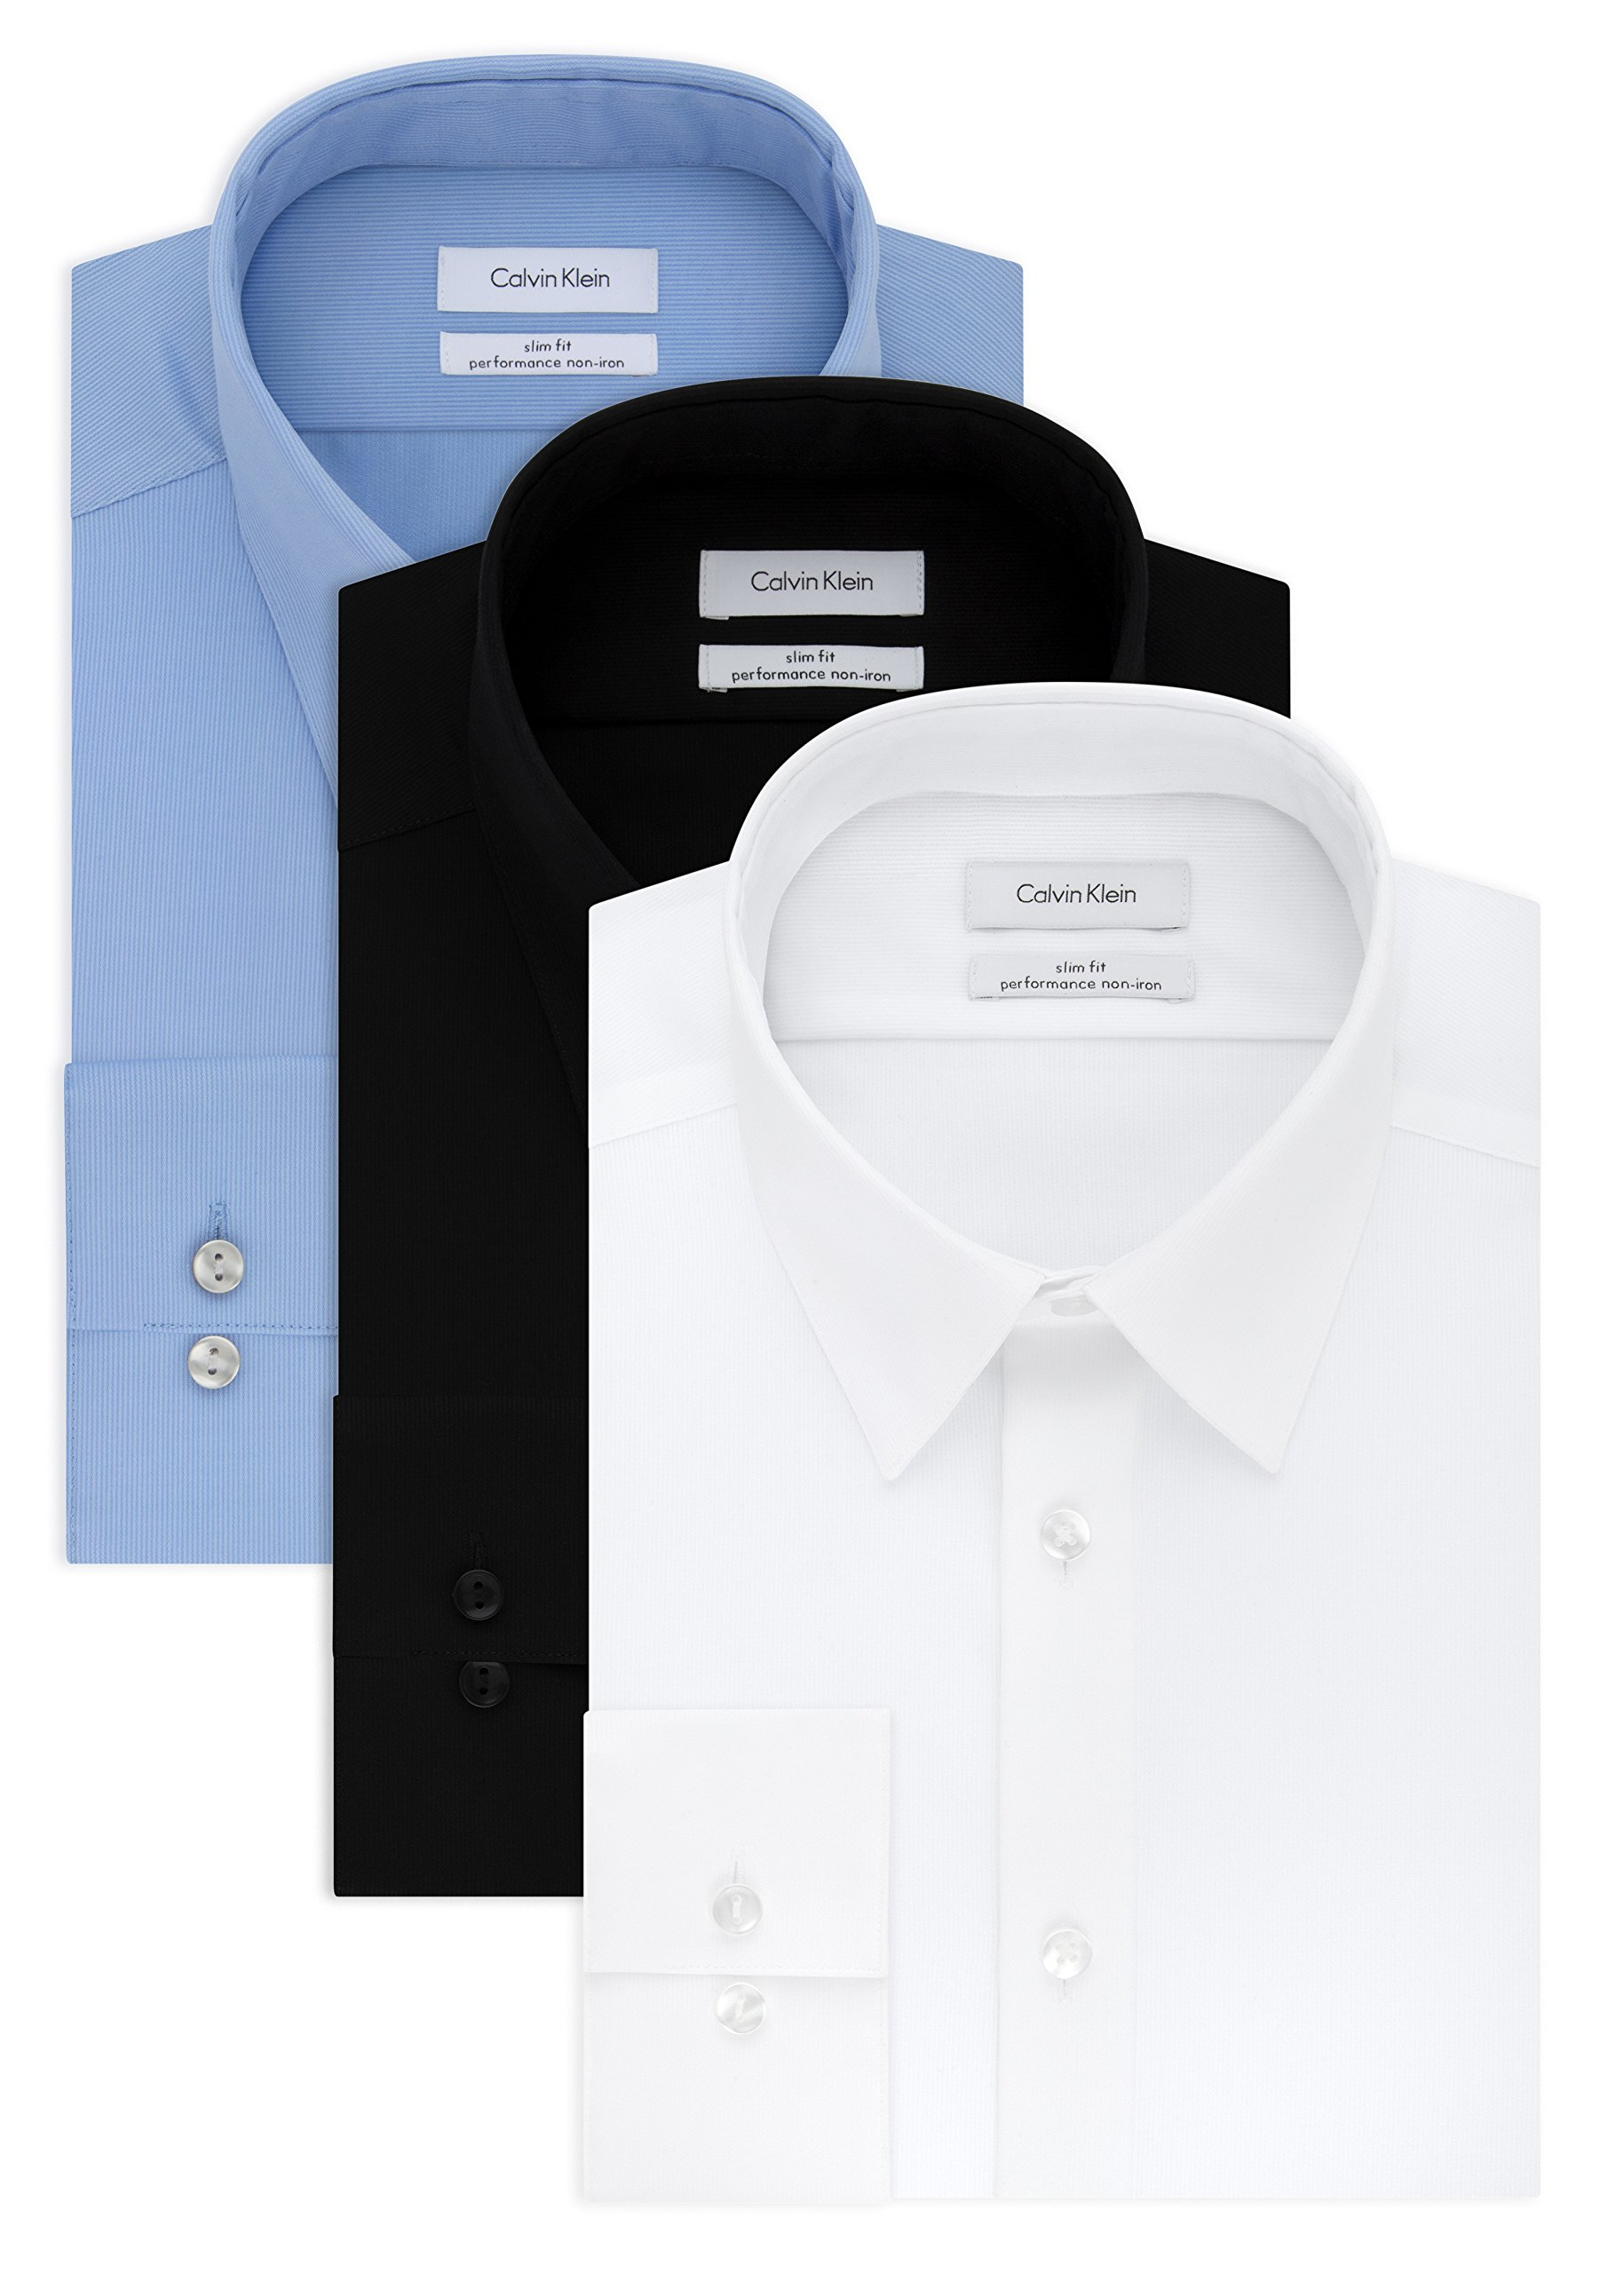 Calvin Klein Men's Non Iron Slim Fit Solid Dress Shirt, White/Mist/Black, 16'' Neck 32''-33'' Sleeve